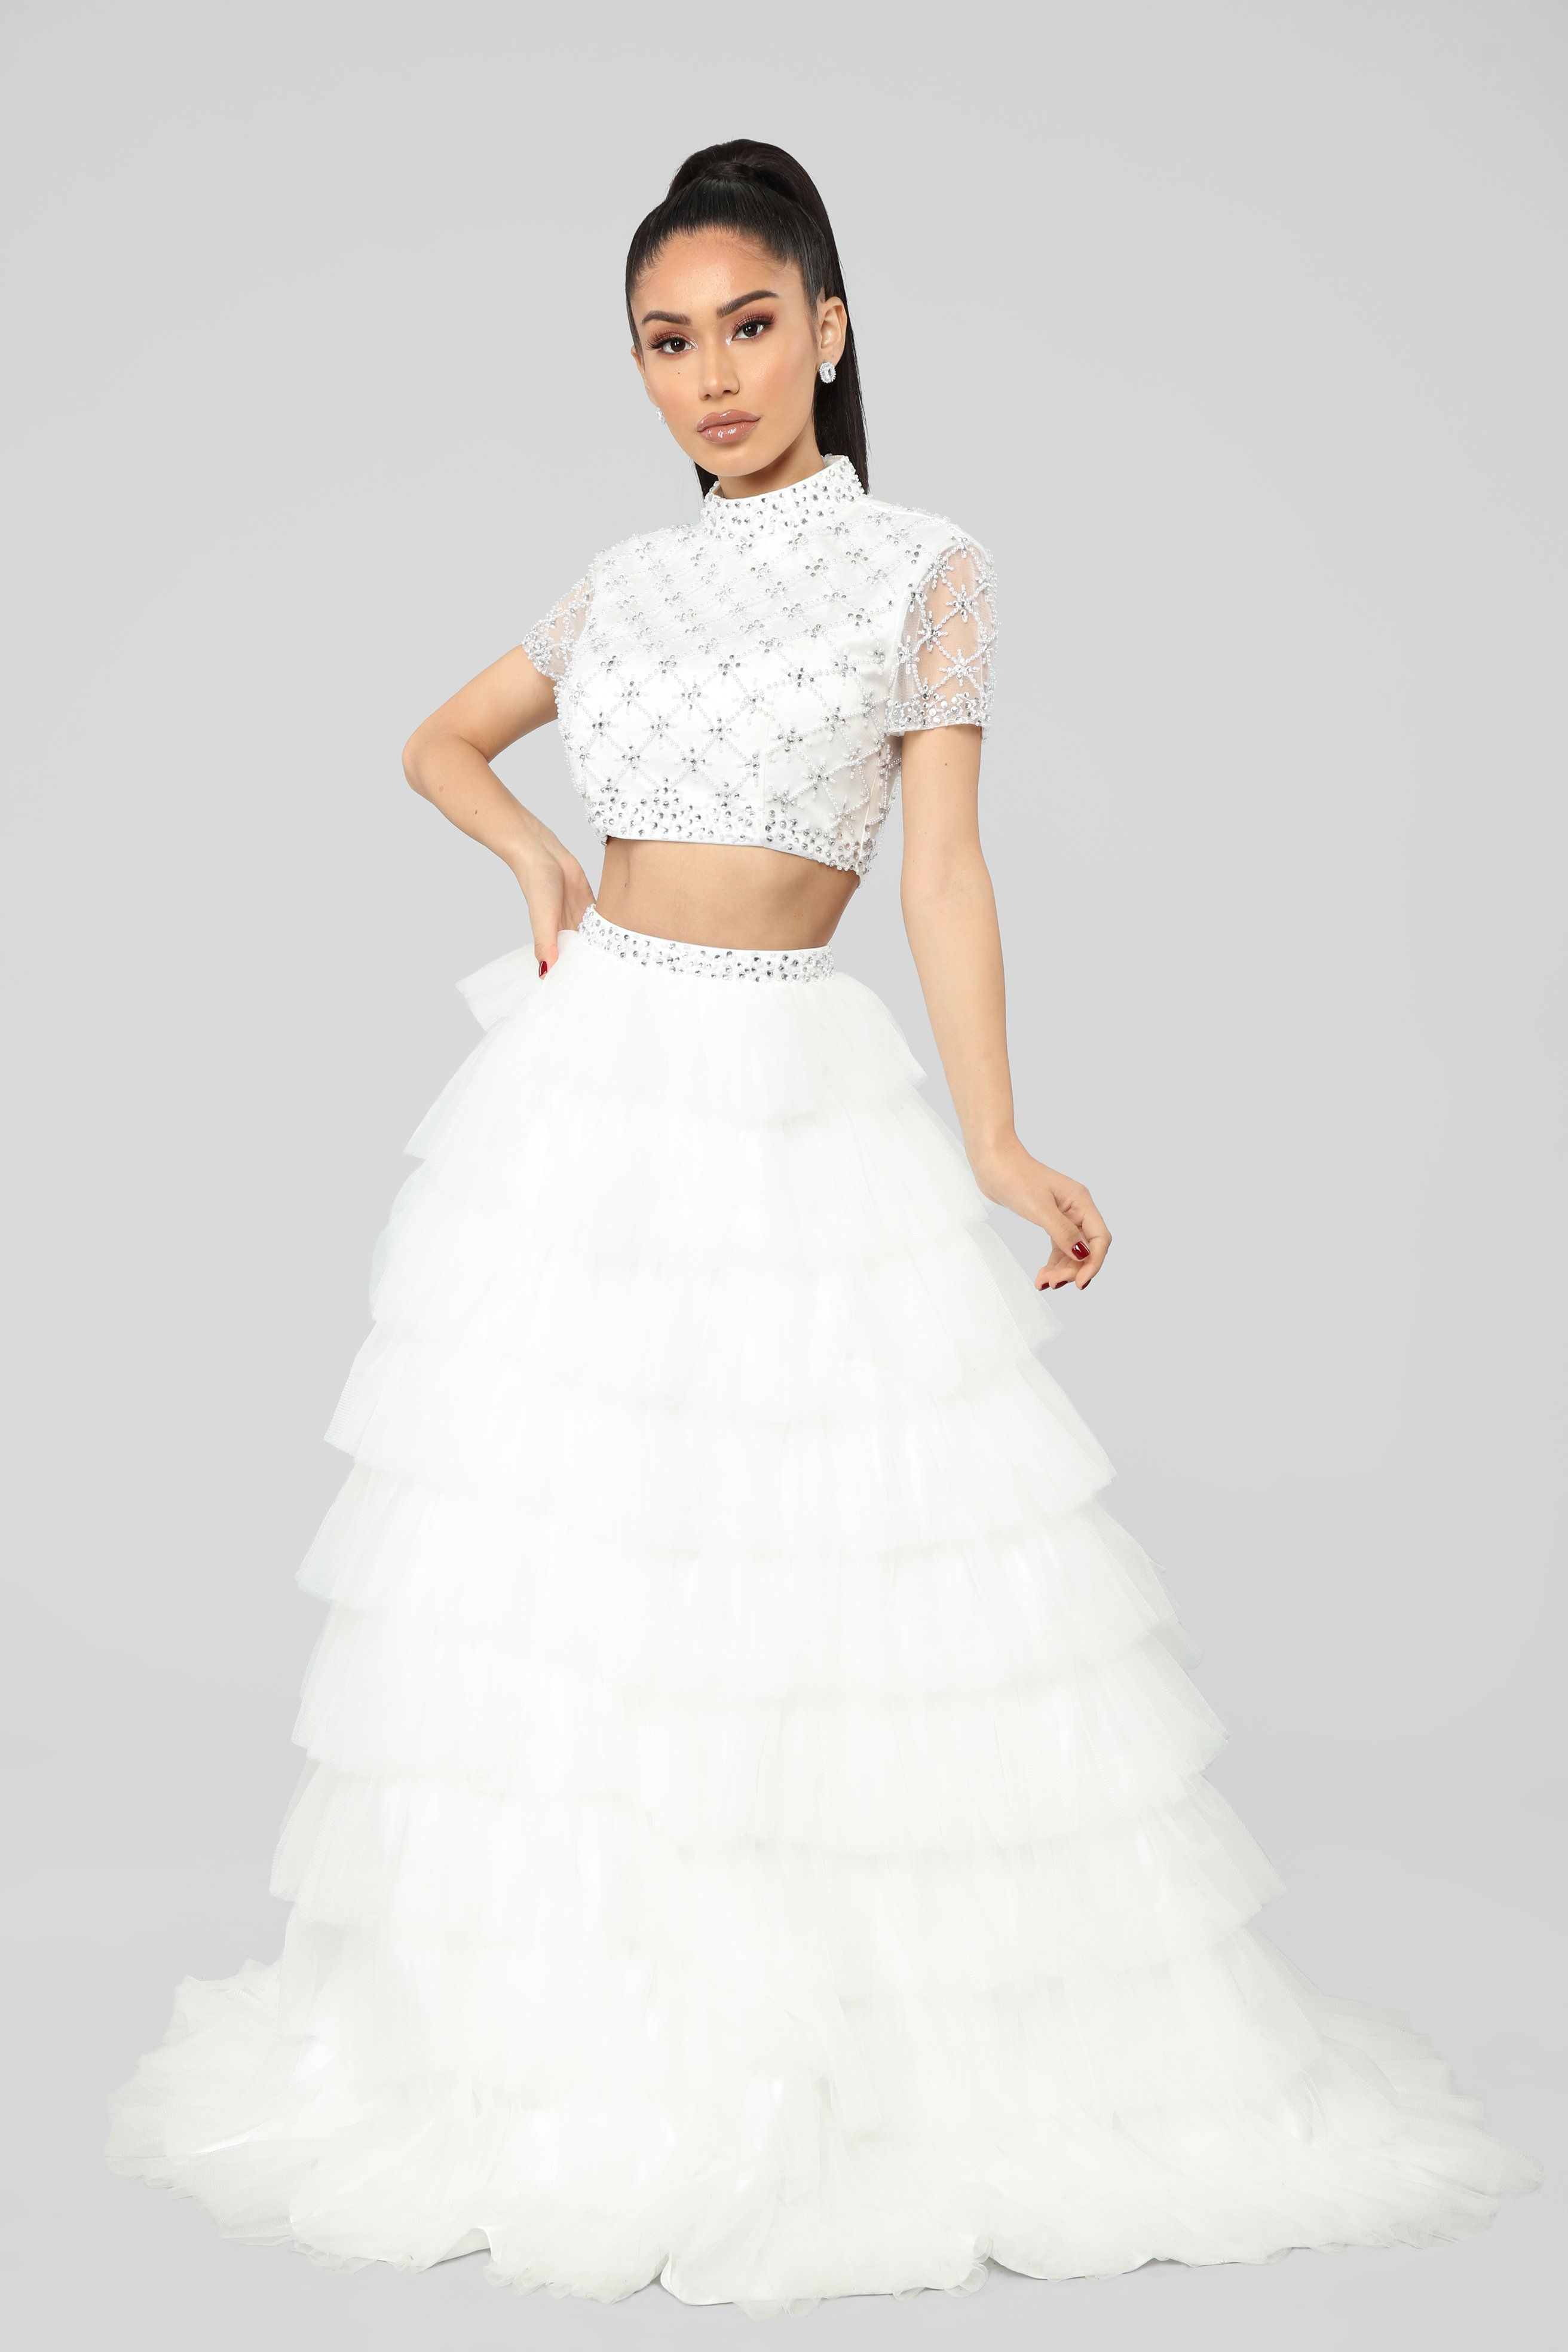 Best Two Piece Prom Dresses of 2019 \u2013 Stylish Crop Top Prom